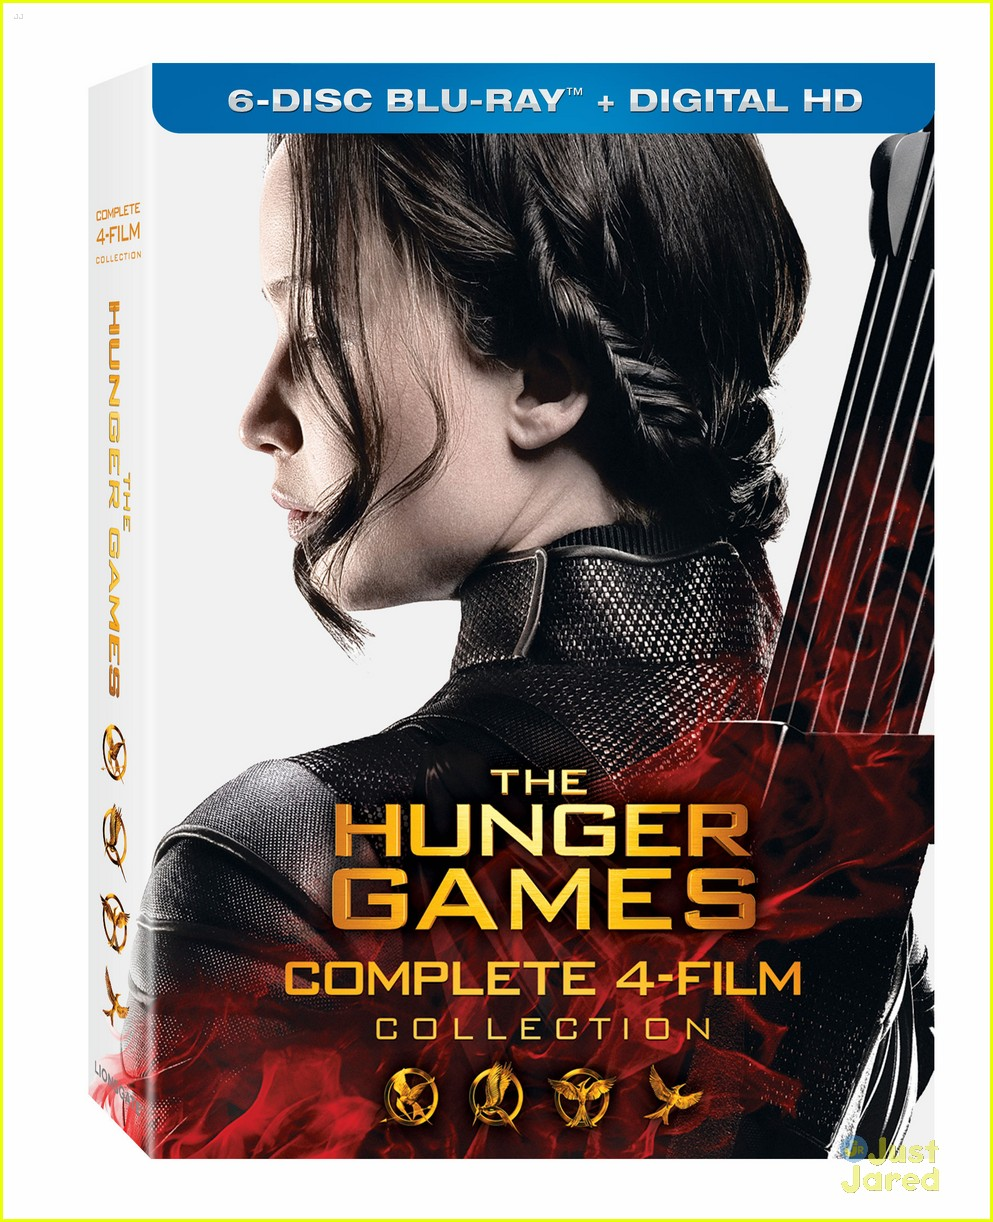 hunger games complete collection package details 03